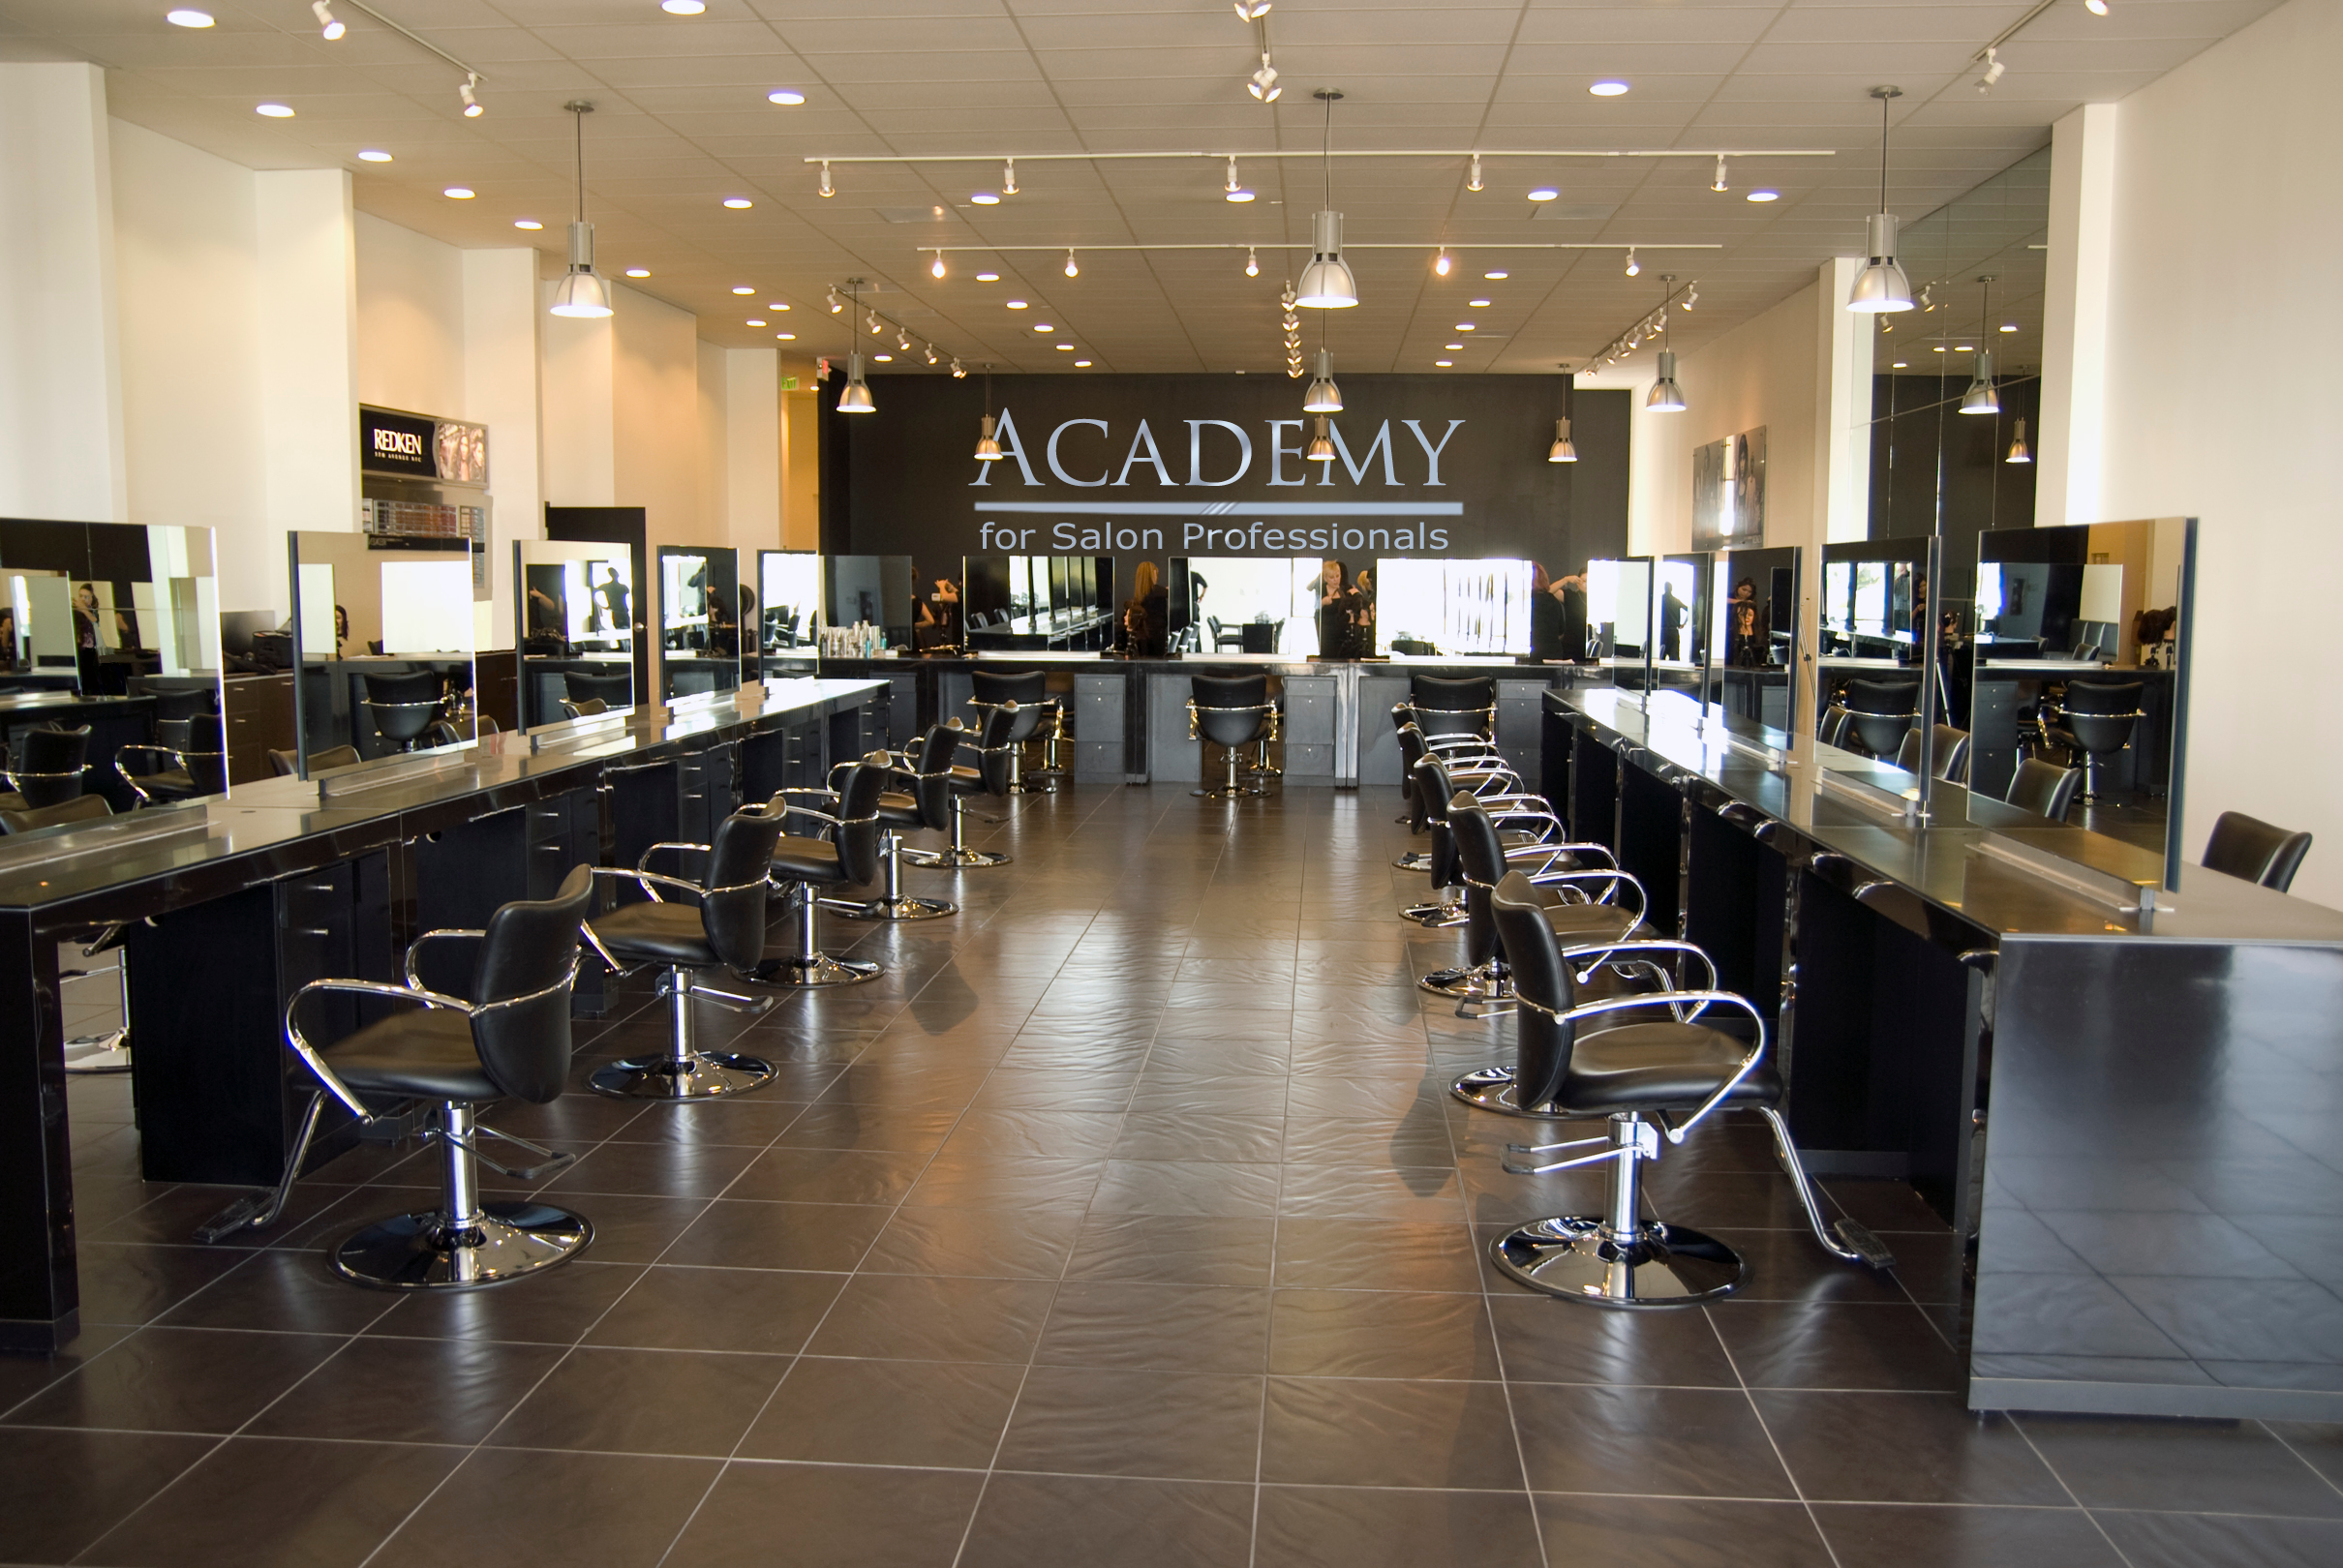 Academy for salon professionals member santa clara ca for Academy of salon professionals